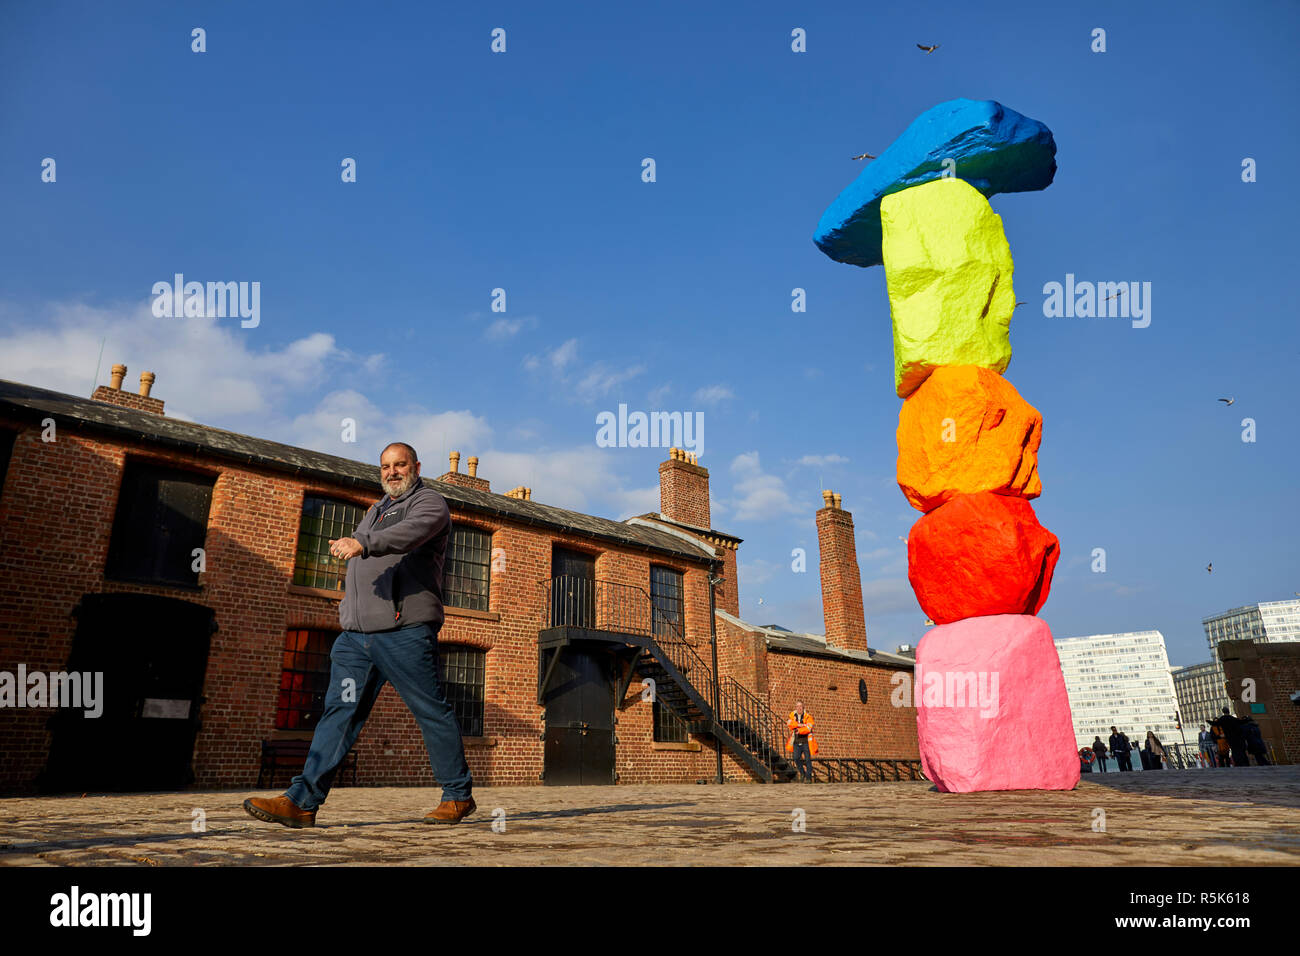 Liverpool Mountain public art on Liverpools waterfront by artist Ugo Rondinone Stock Photo